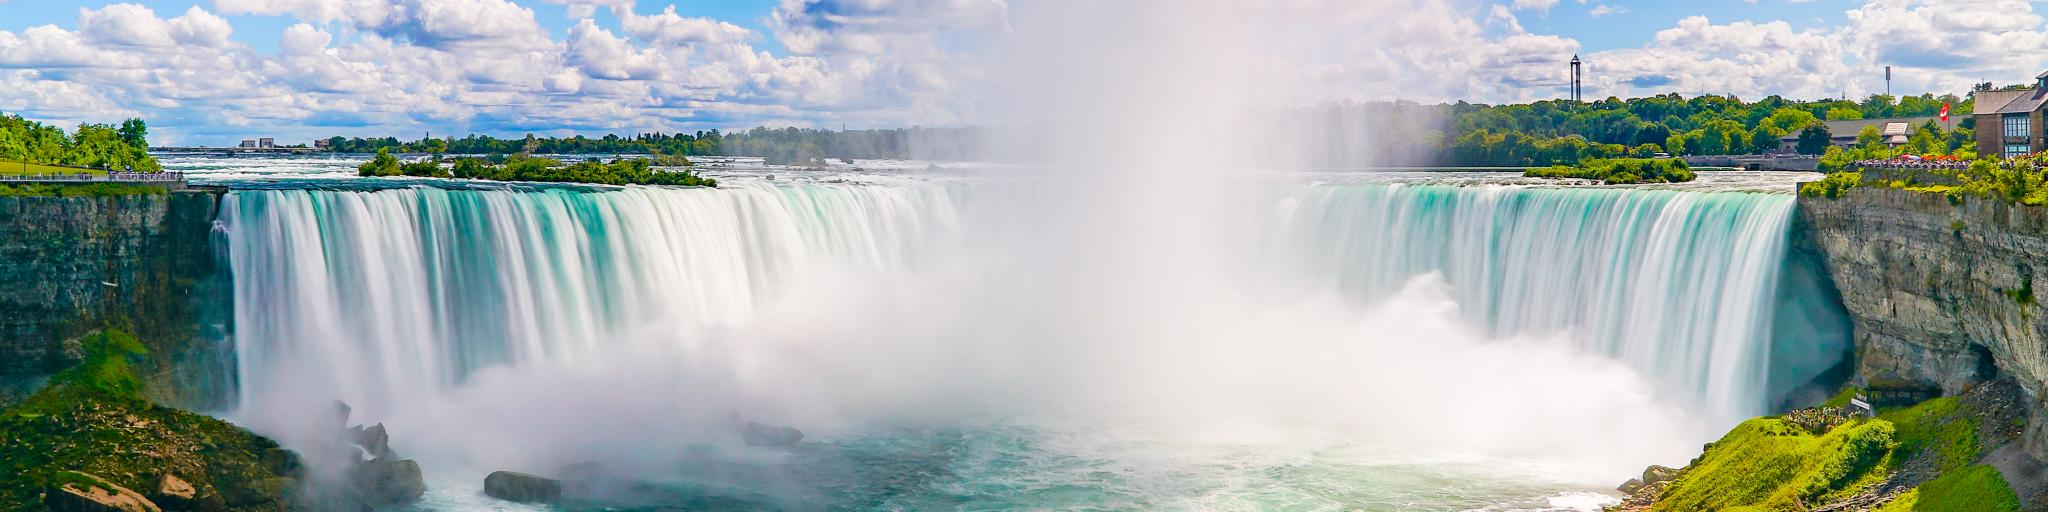 A panoramic view of the horseshoe-shaped falls with turquoise water the stunning Niagara Falls framed with green grasses and trees at summer in a blue sky with cotton-like clouds.